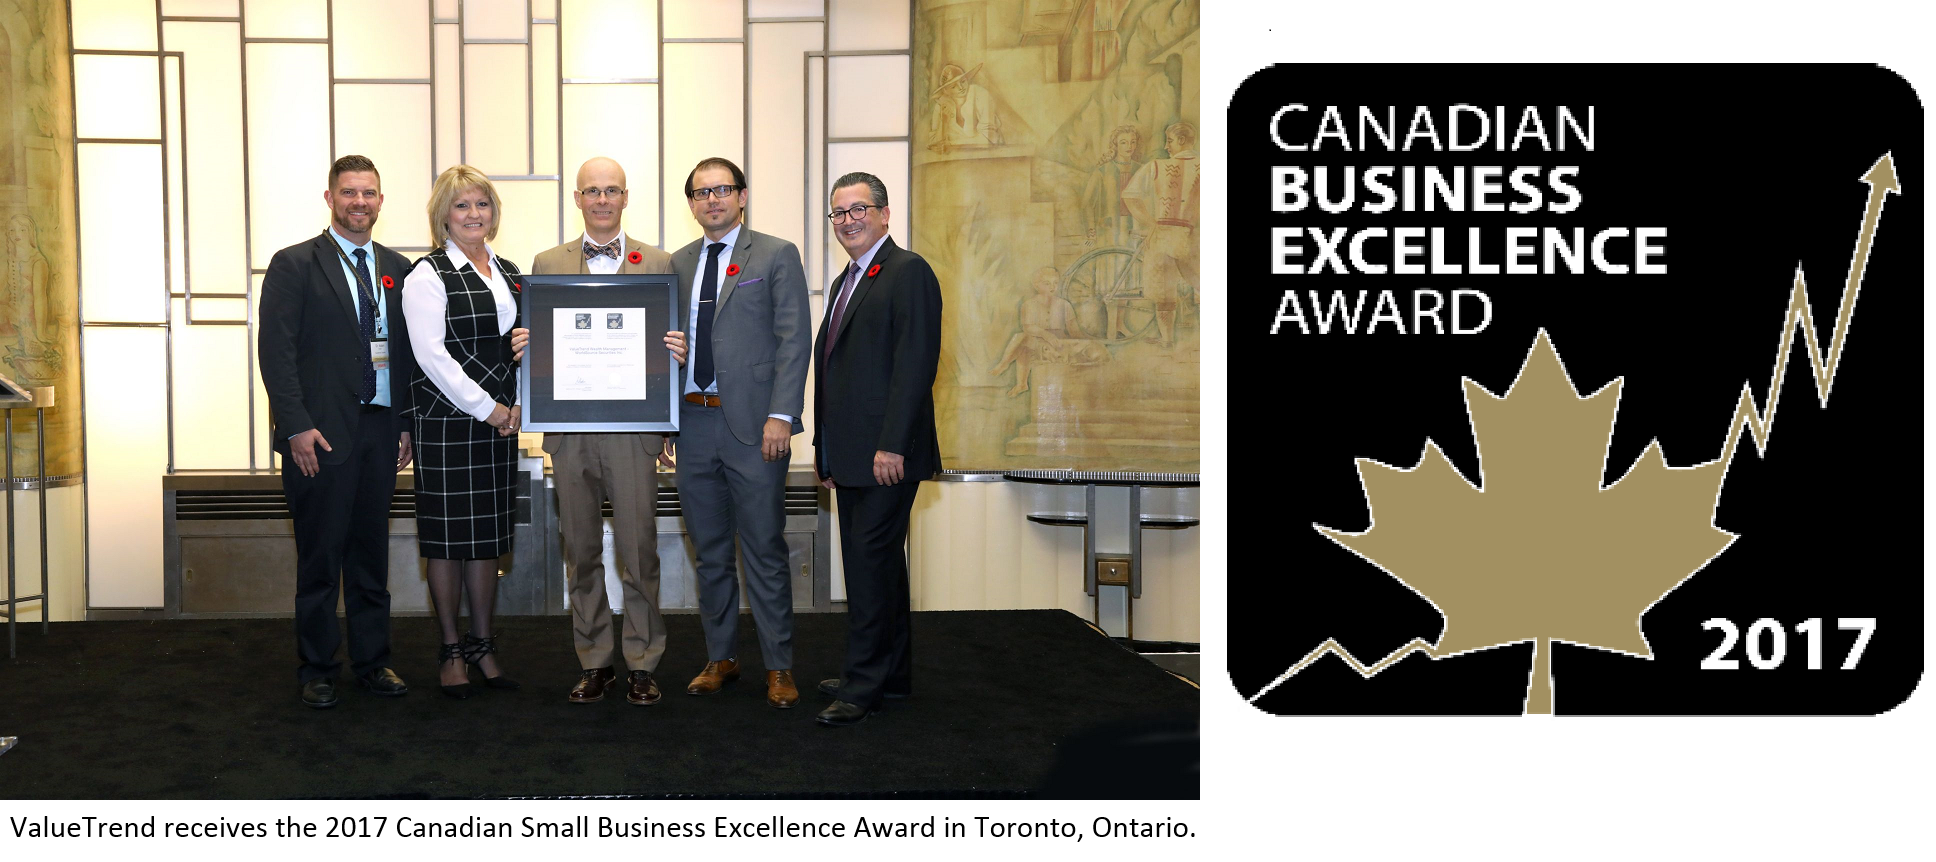 ValueTrend Wealth Management is one of the leading wealth management firms in Canada and is a proud recipient of the 2017 Canadian Business Excellence Award